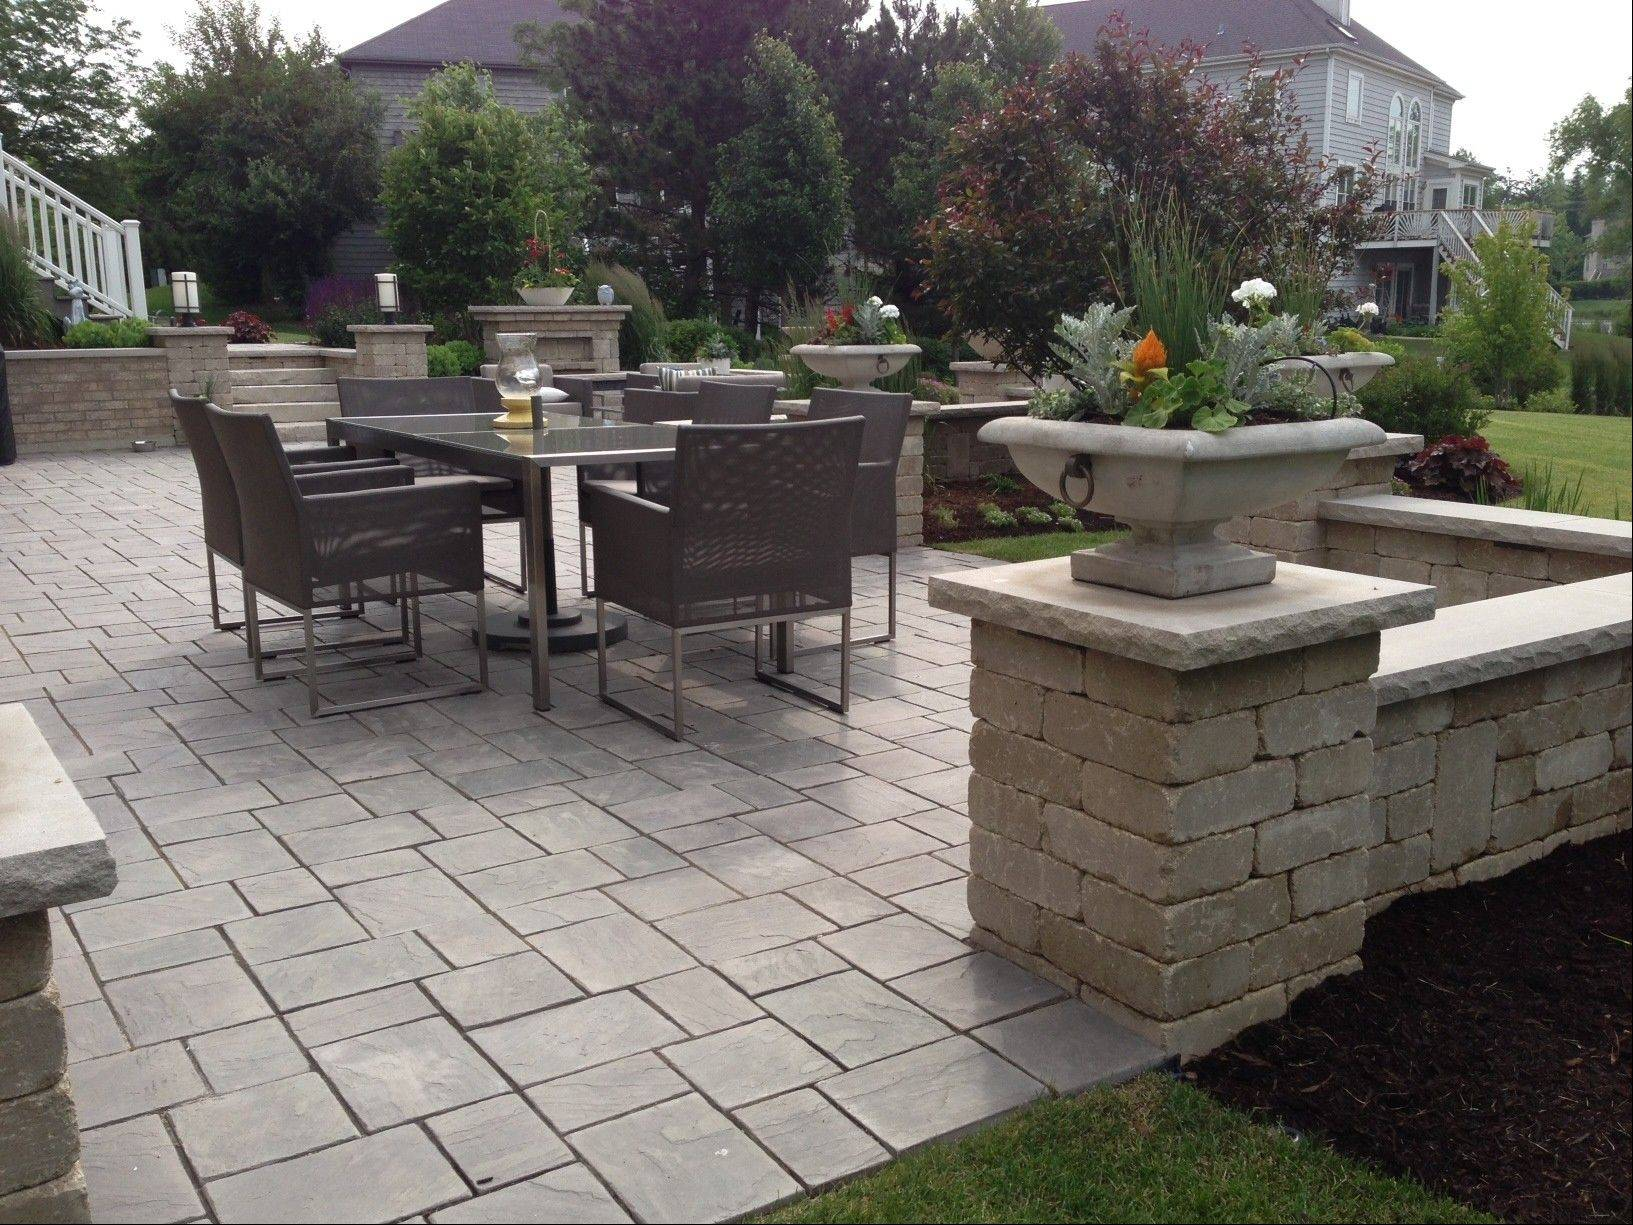 Pavers and retaining walls have become a popular alternative to wooden decks.